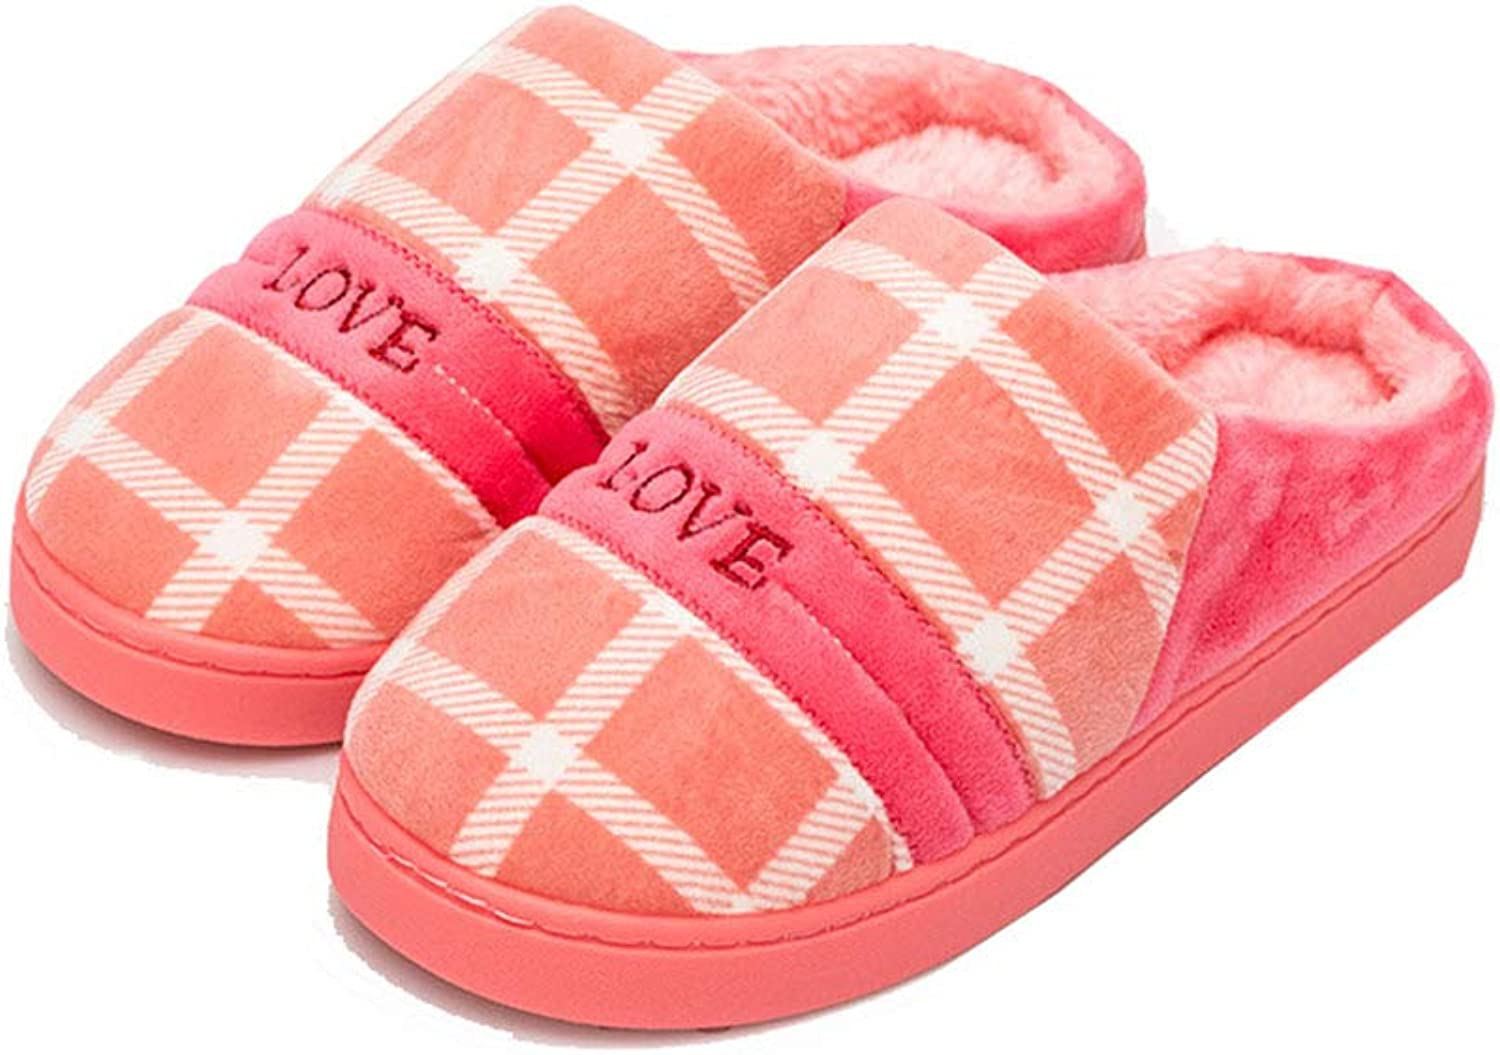 Fashion Home Plush Slippers Plaid Cotton Warm Slippers Indoor Non-Slip shoes Winter Warm Comfortable Unisex,Pink,EU3637=24Cm